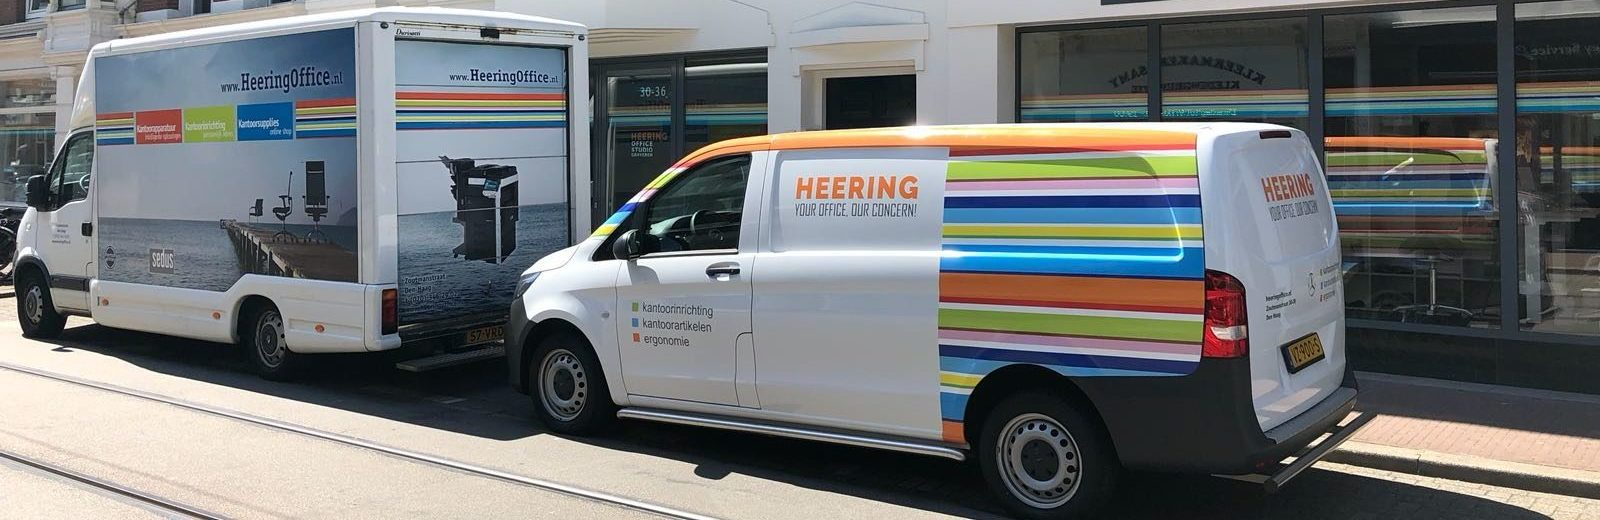 contact Heering Office Den Haag